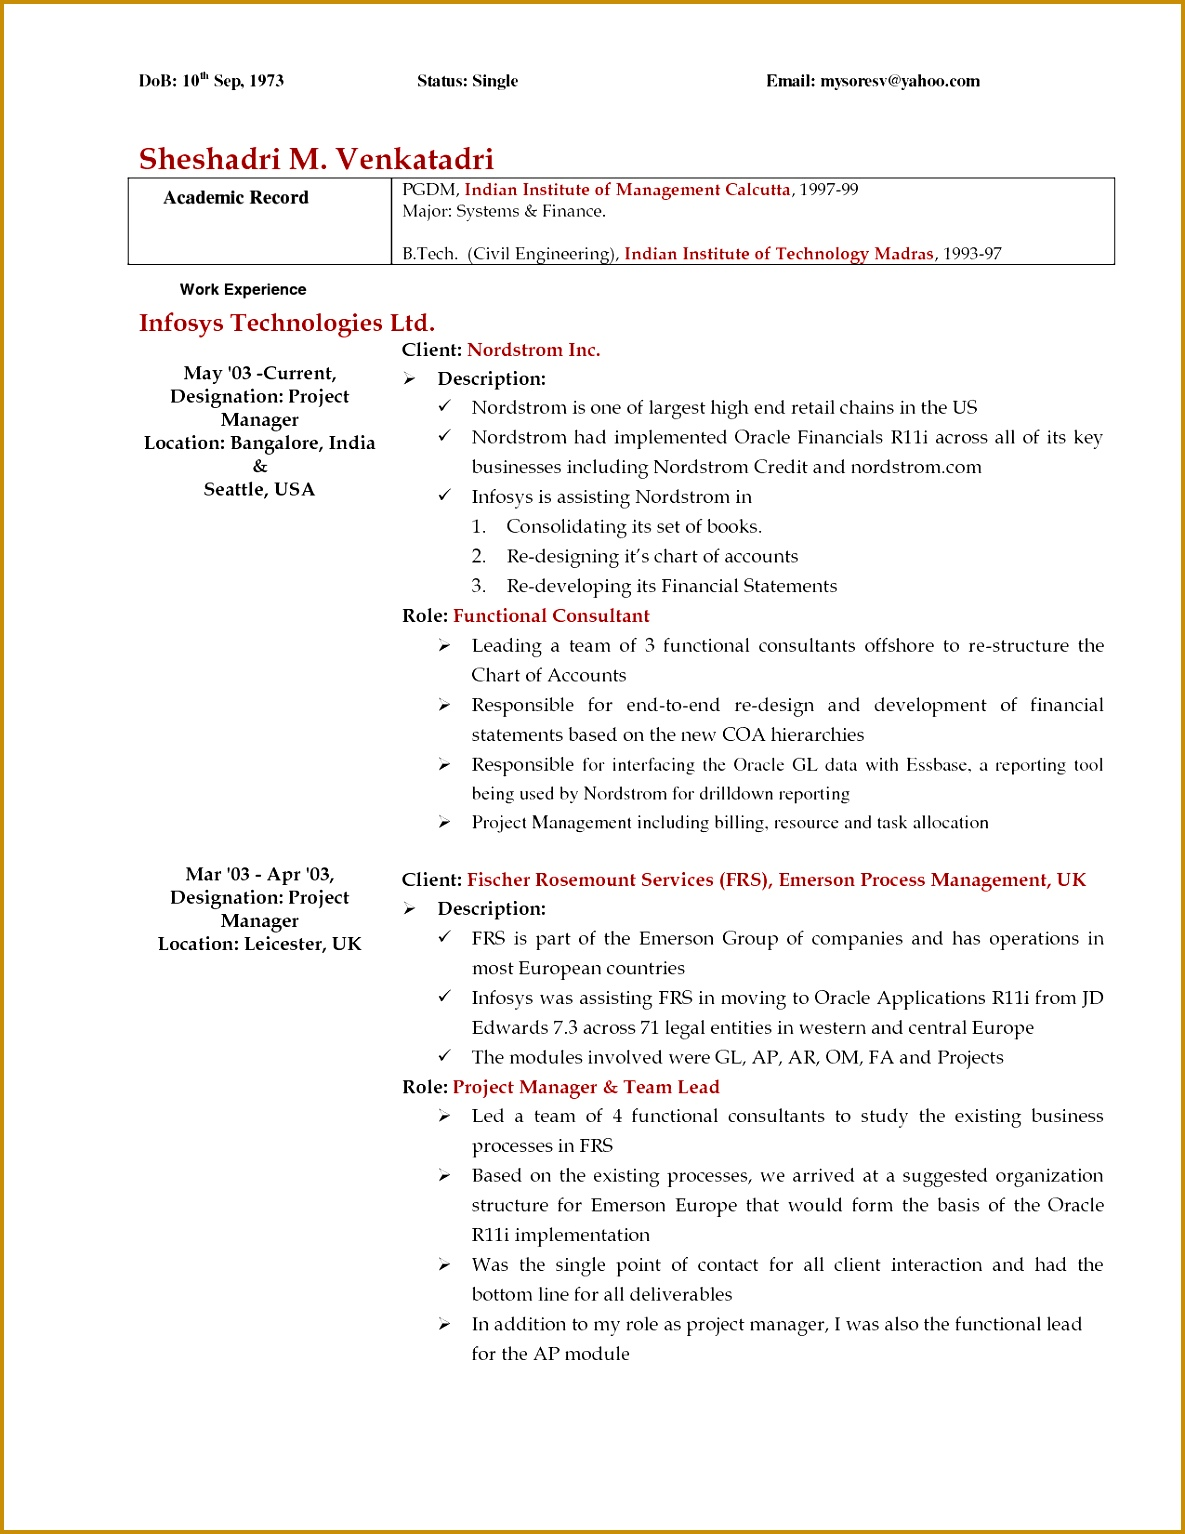 e Page Professional Resume Template Inspirational Examples A Cover Letter For A Resume Best Od Consultant 15341185